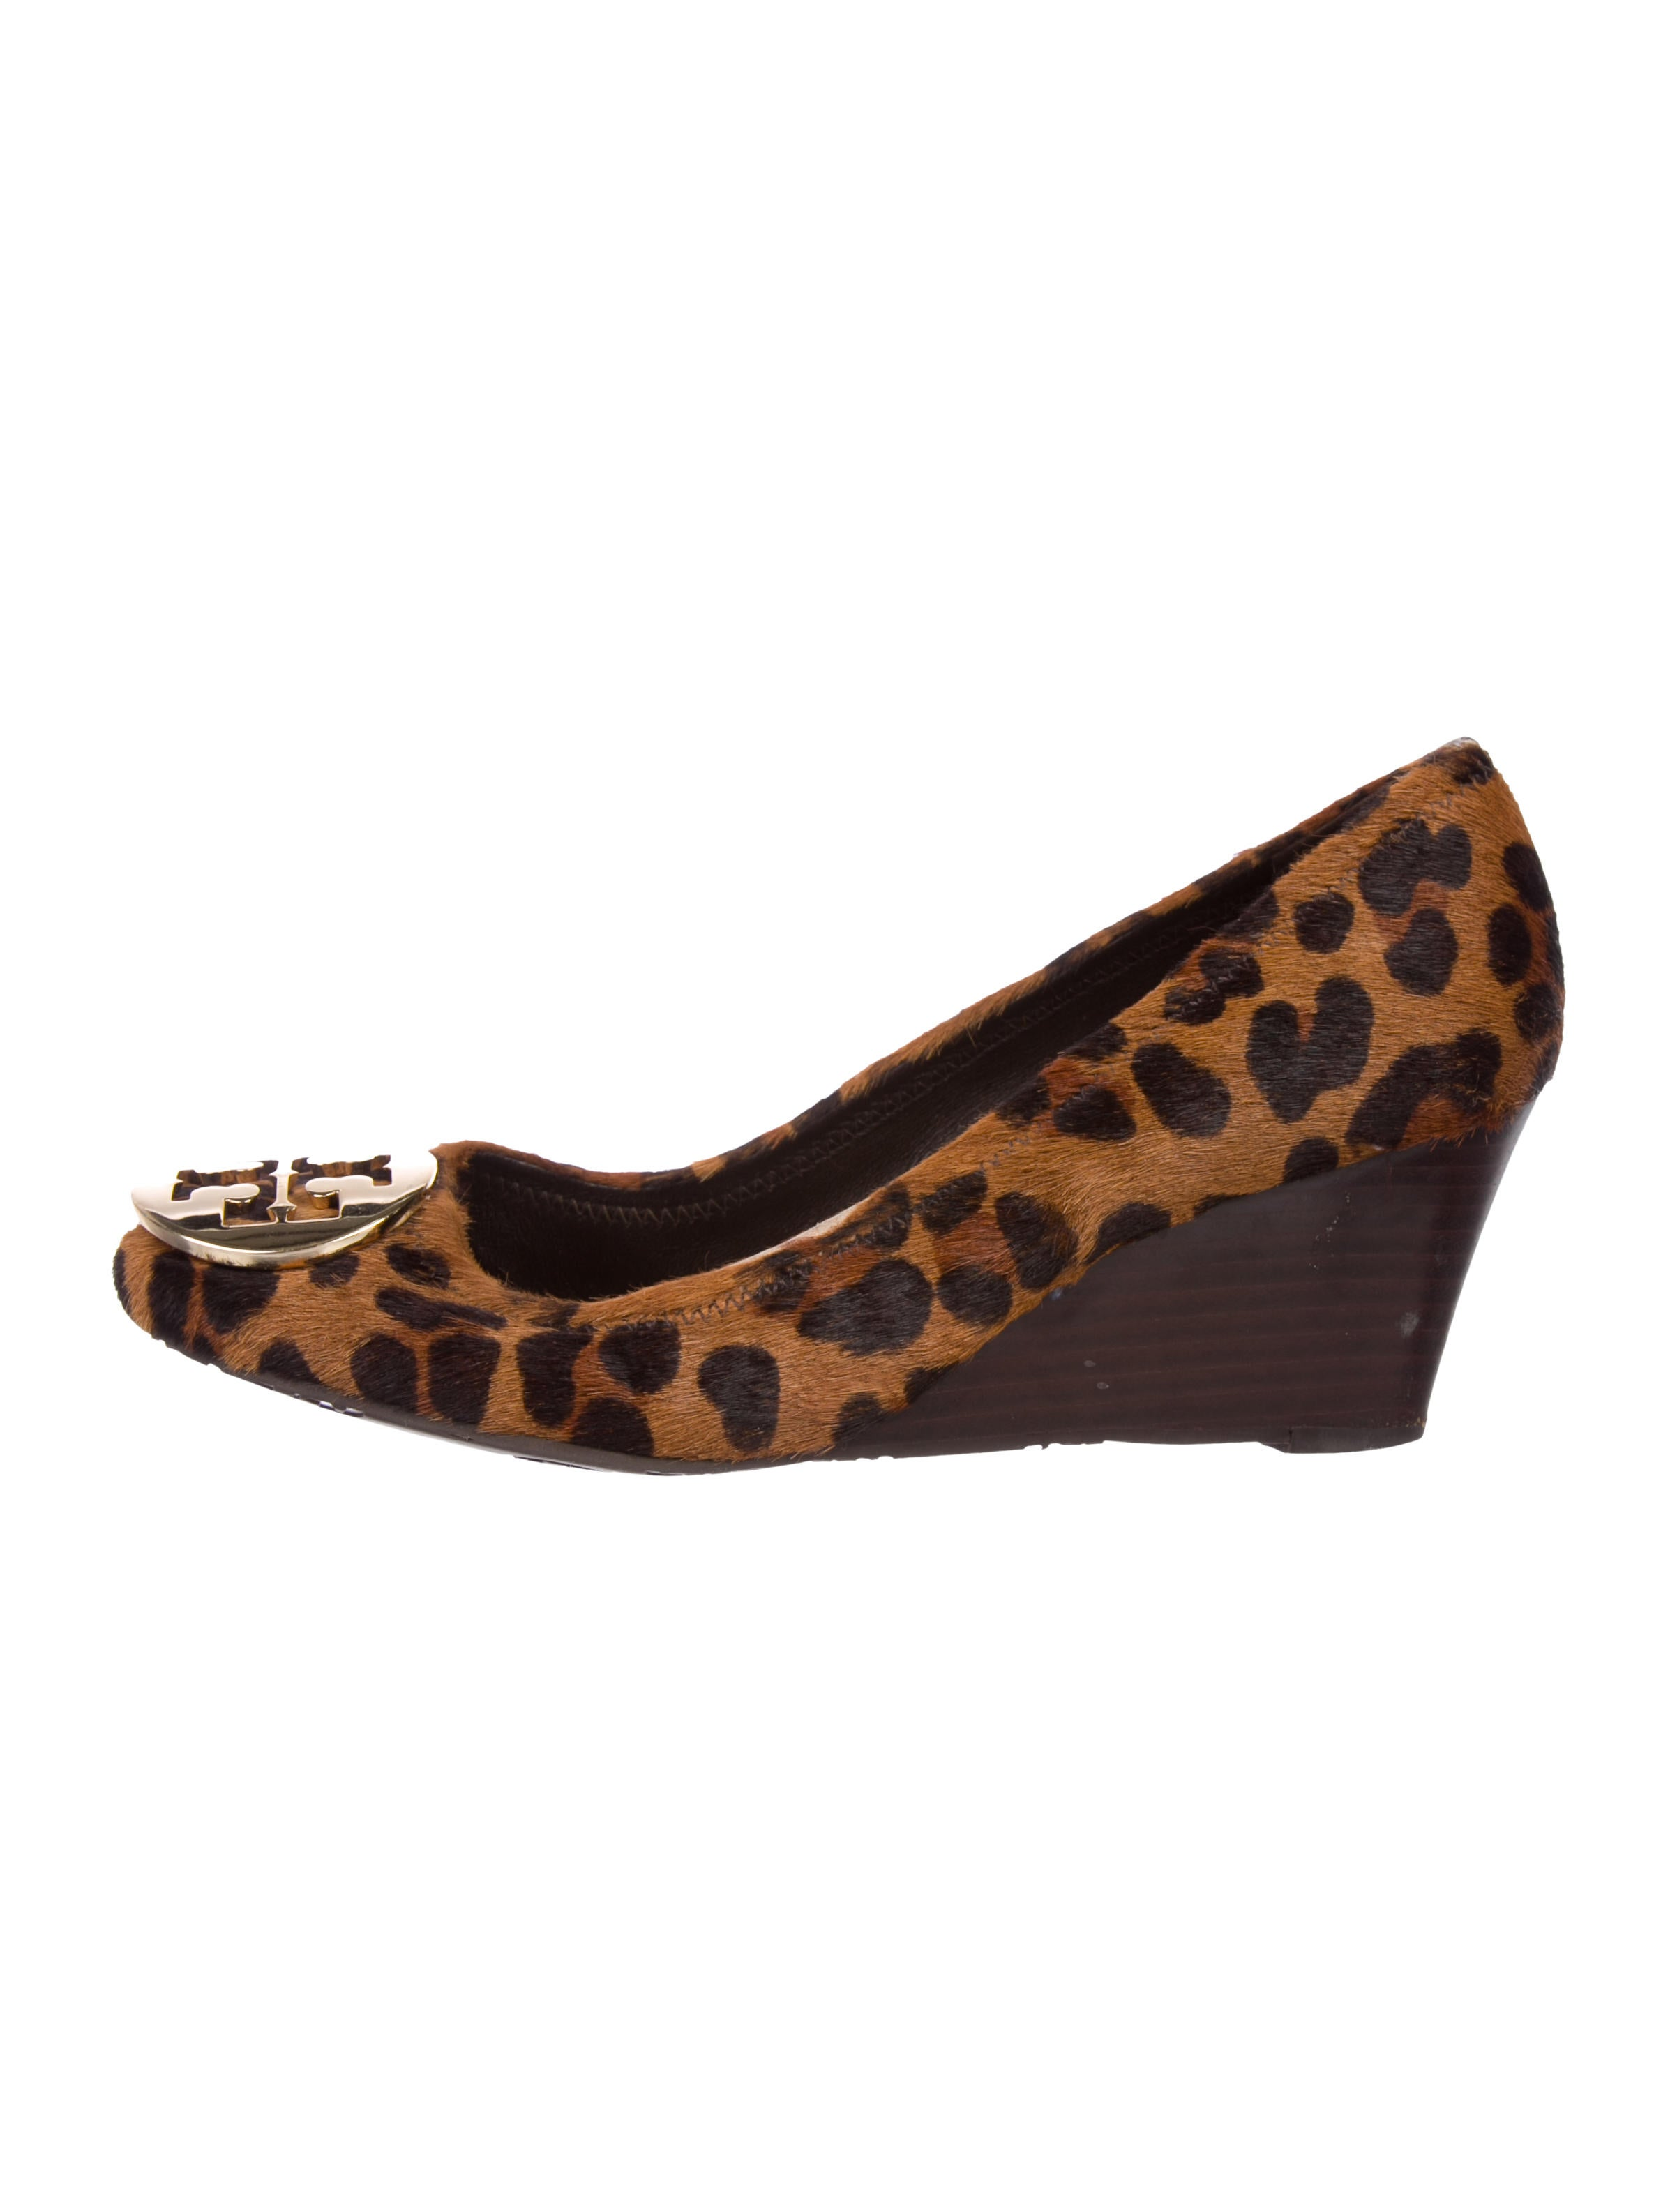 d49a6f2e3 Tory Burch Ponyhair Printed Wedges - Shoes - WTO146853